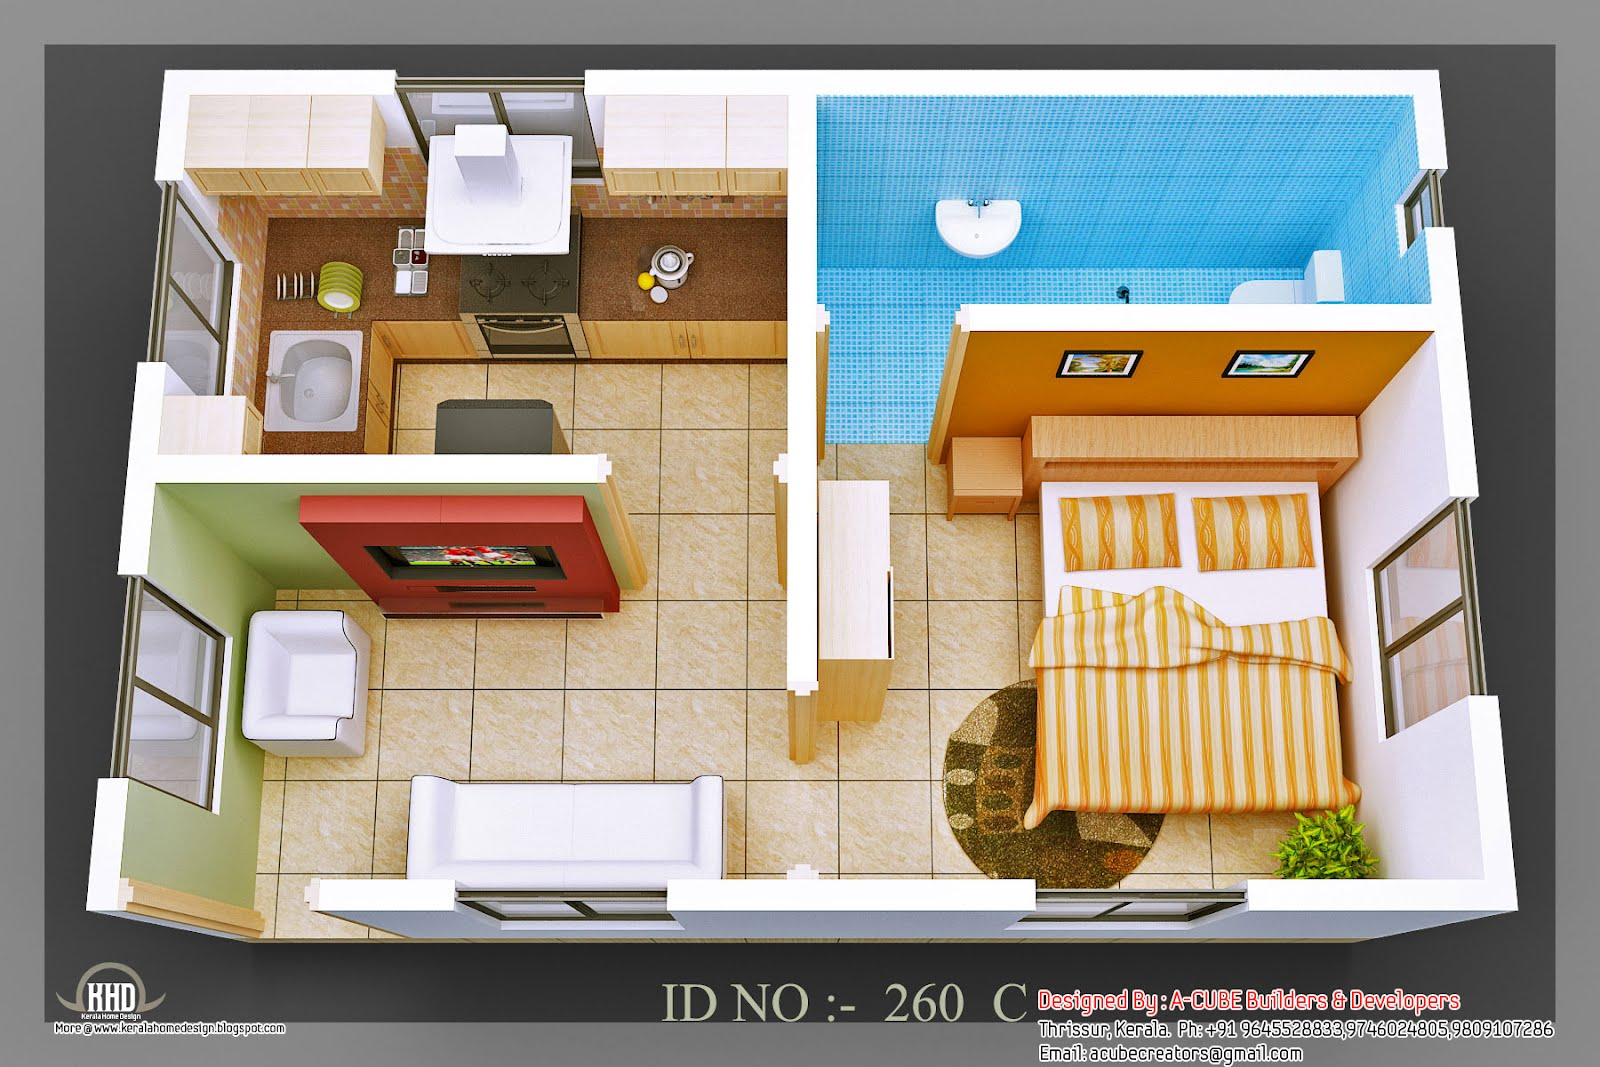 3d isometric views of small house plans kerala home design and floor plans - D home designer ...